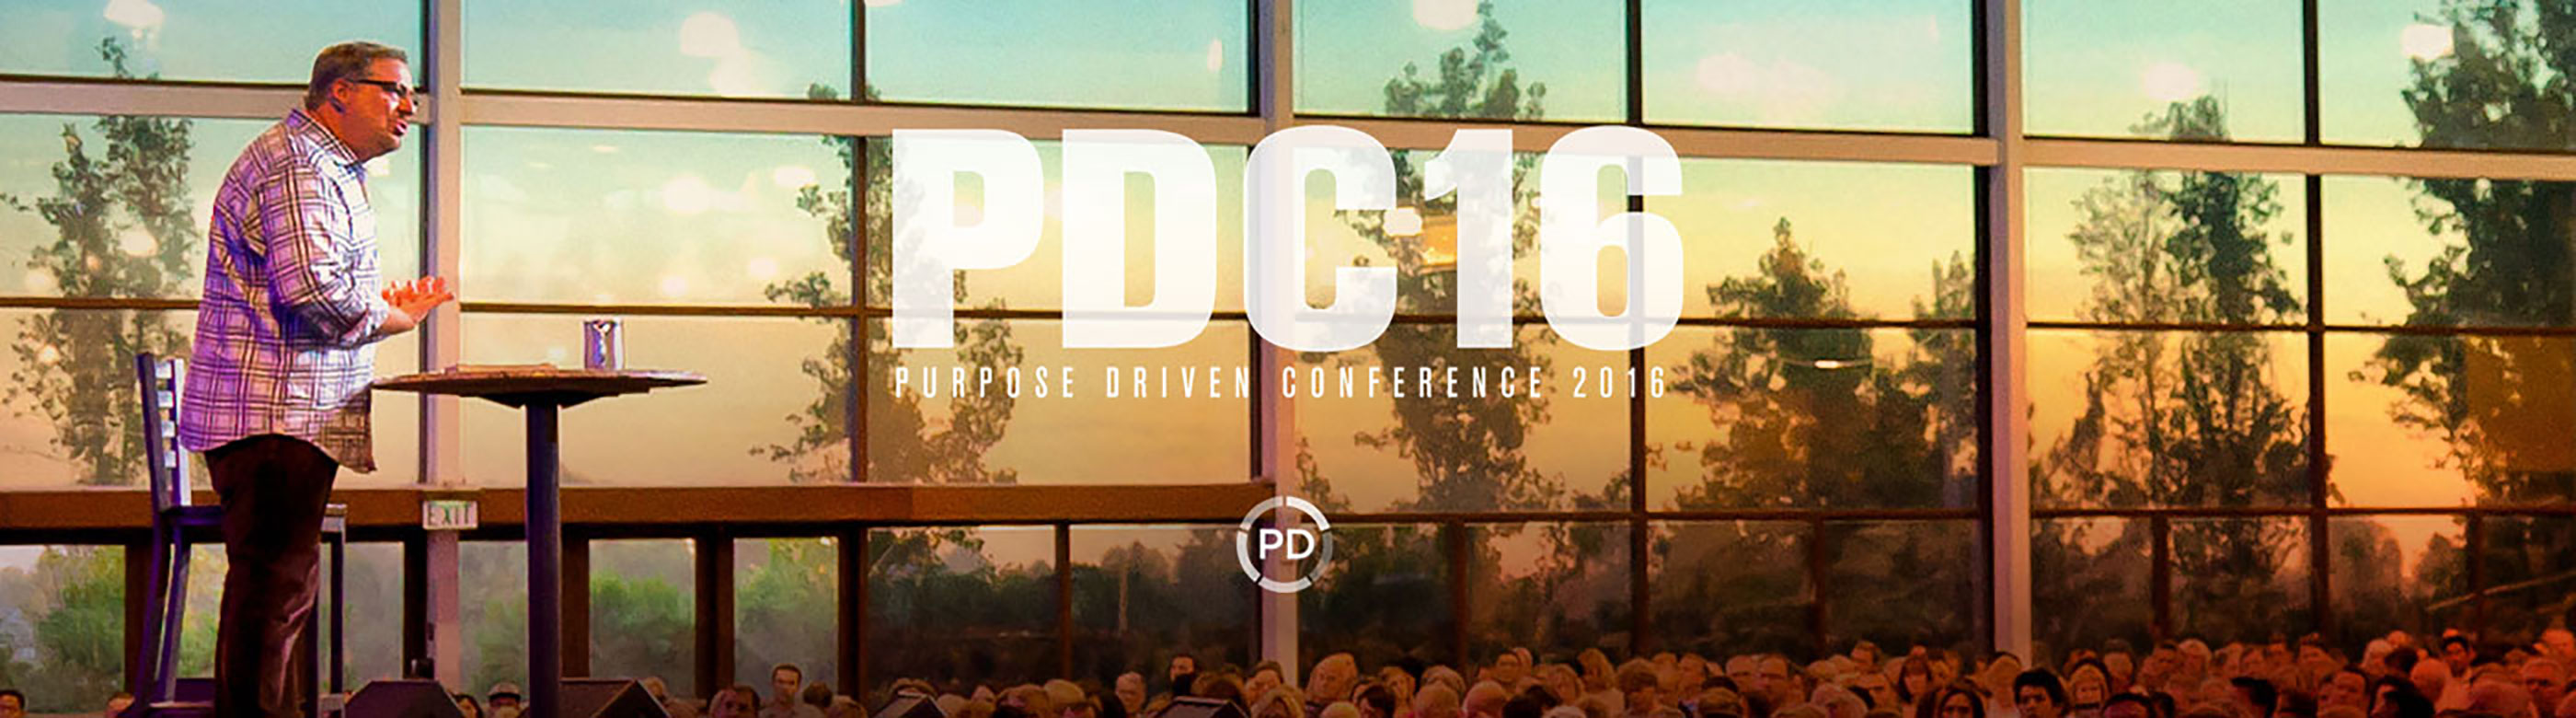 PDC 16 Learning Lab: Planting Healthy, Purpose Driven Churches